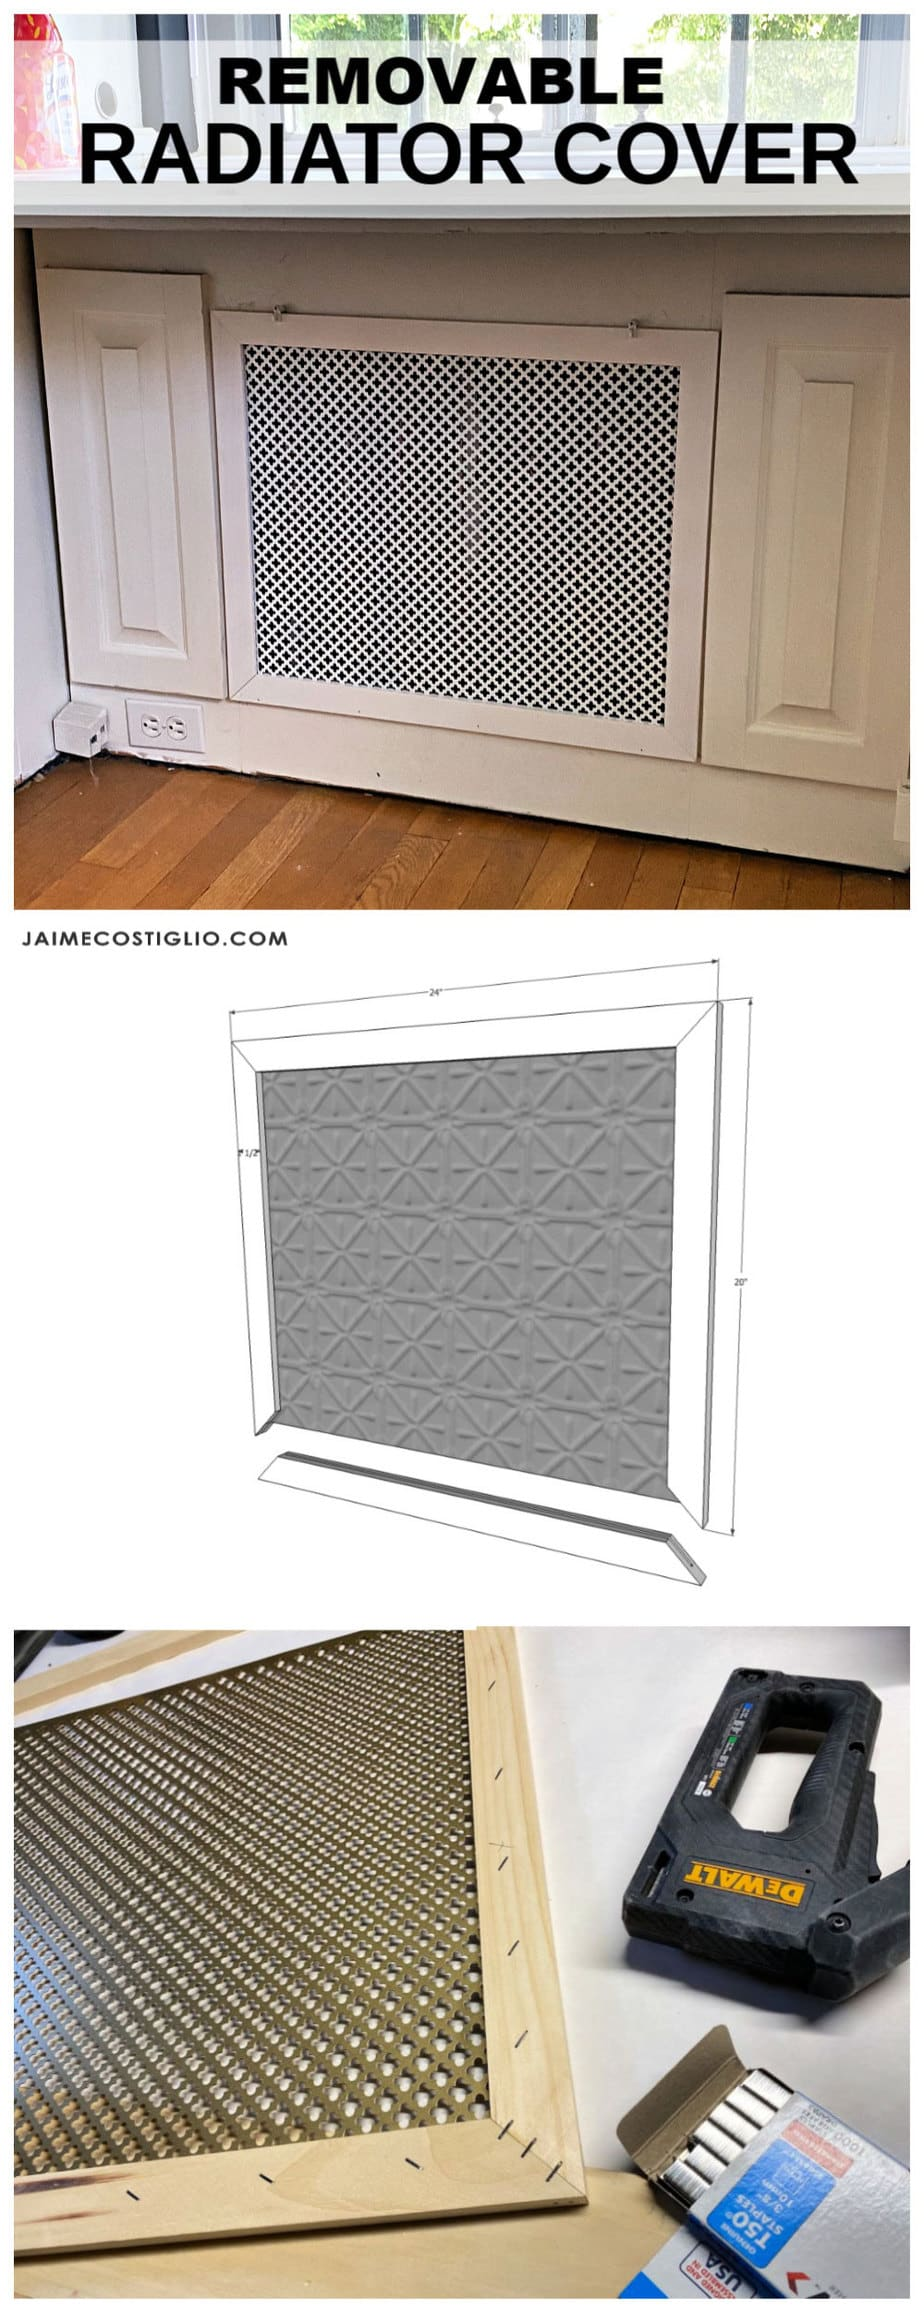 Diy removable radiator cover plans